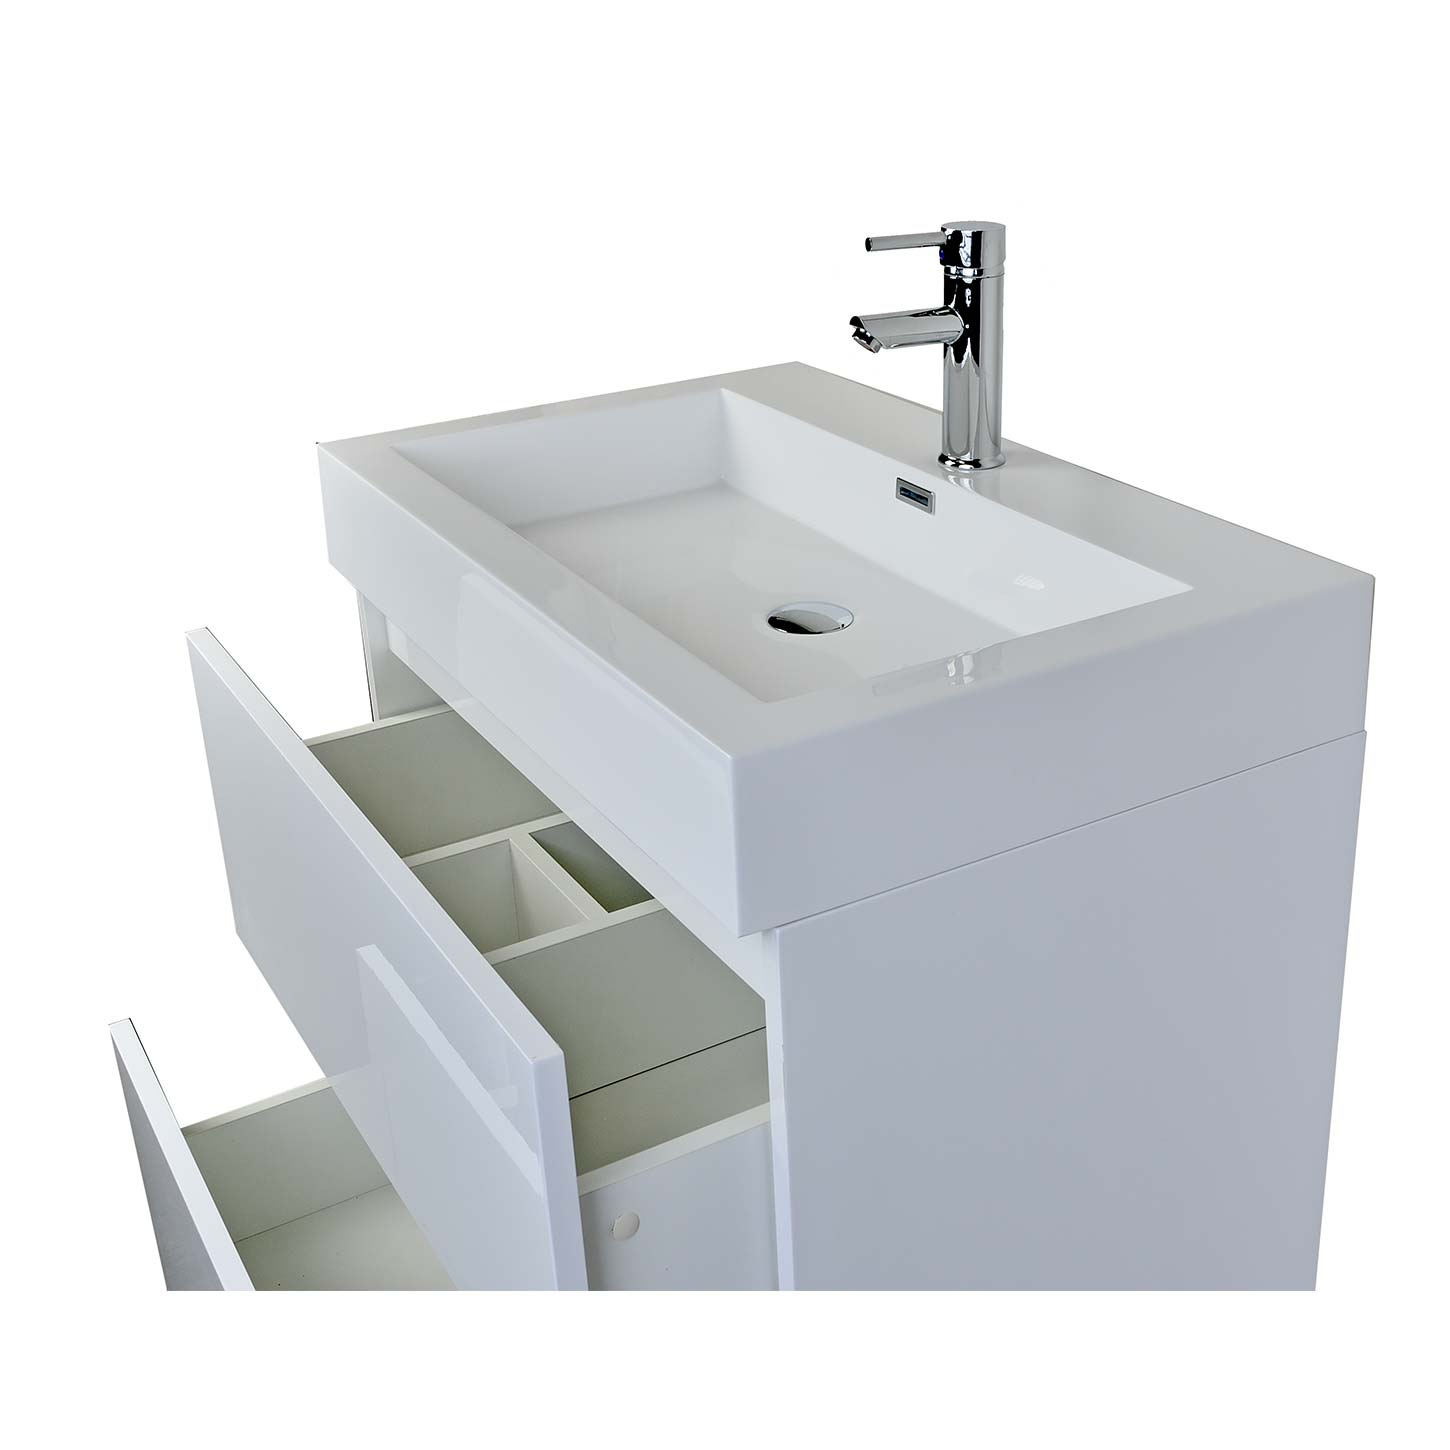 29 5 Contemporary Bathroom Vanity Black Tn Ly750 Bk Conceptbaths Com